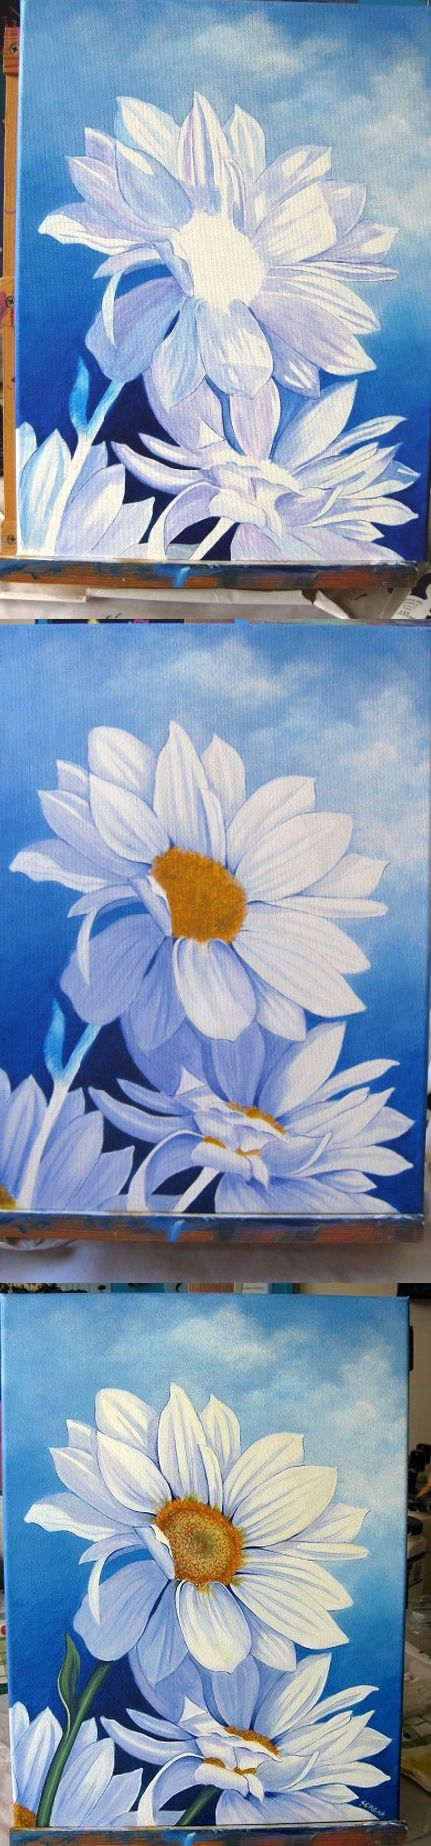 37 best painting images on Pinterest | Acrylic art, Canvases and Paint